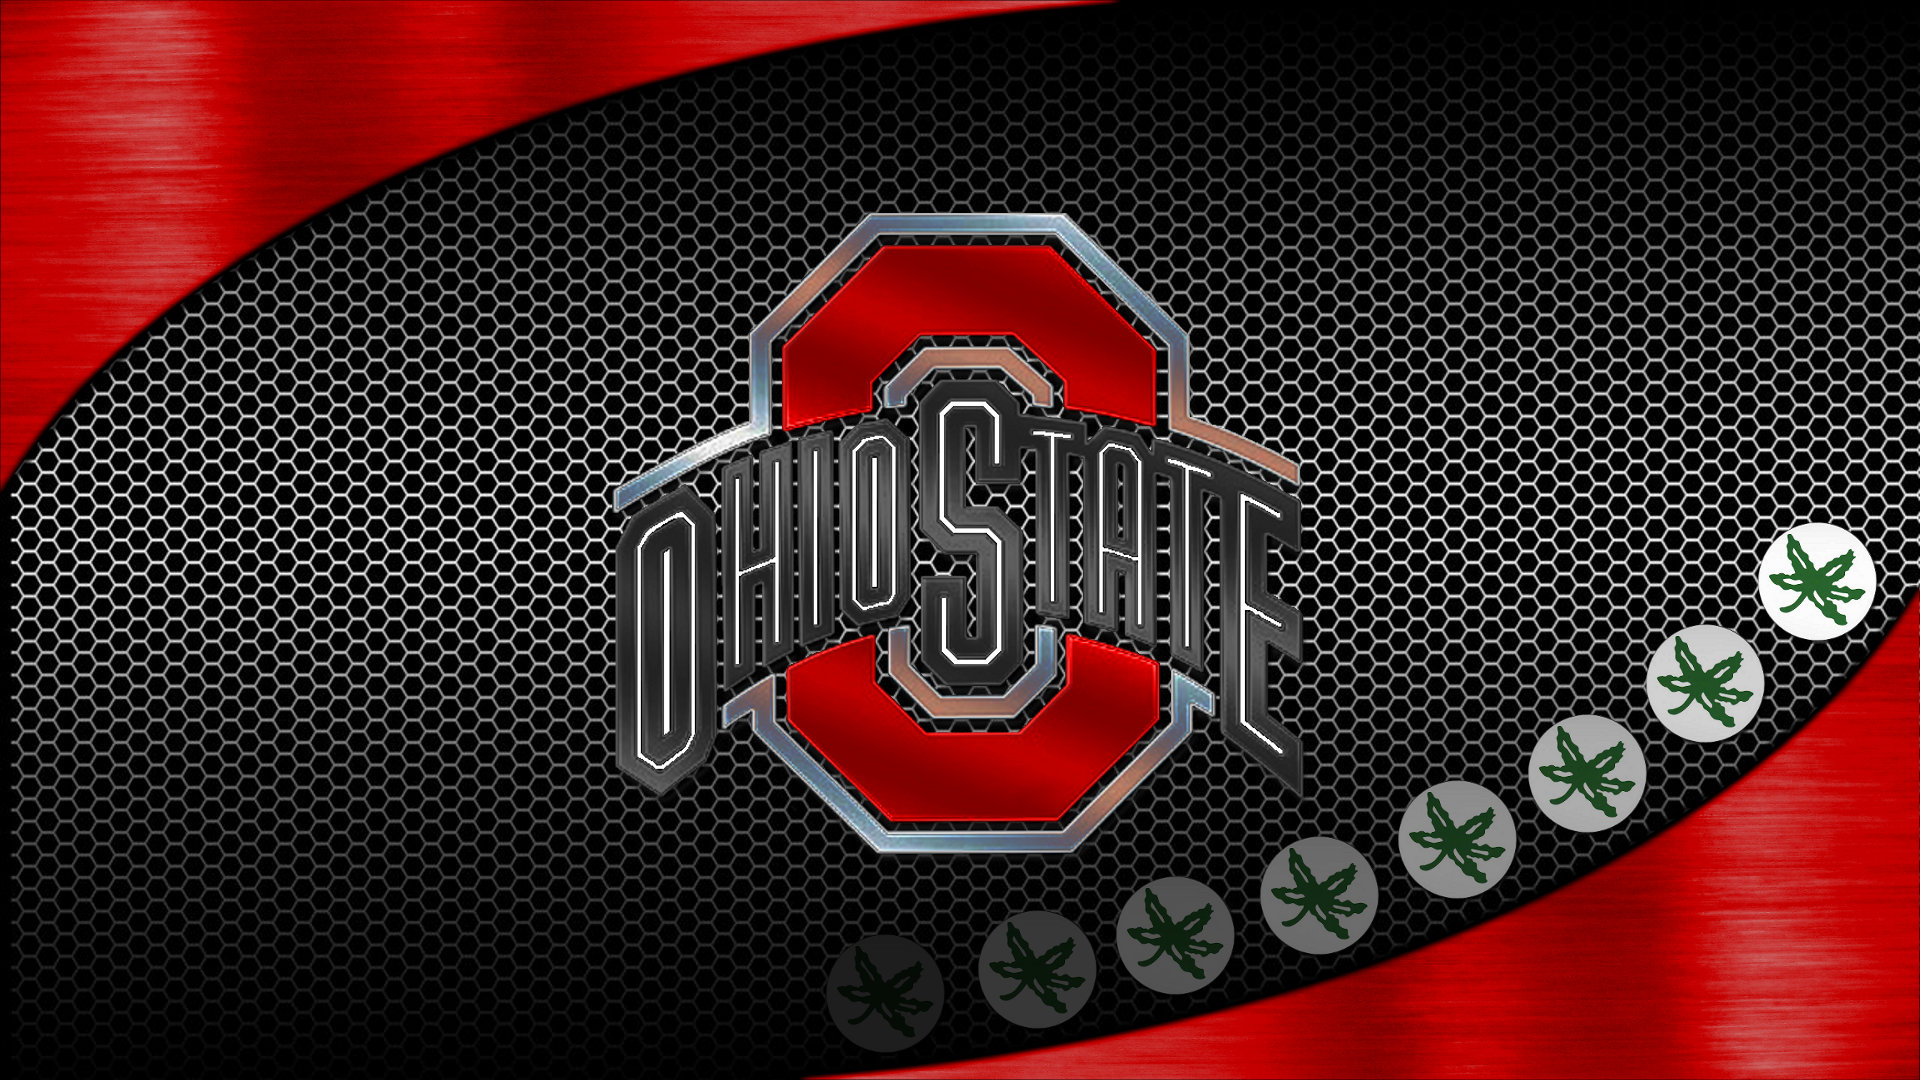 OSU Wallpaper 532 Ohio State Buckeyes Pinterest 1920x1080